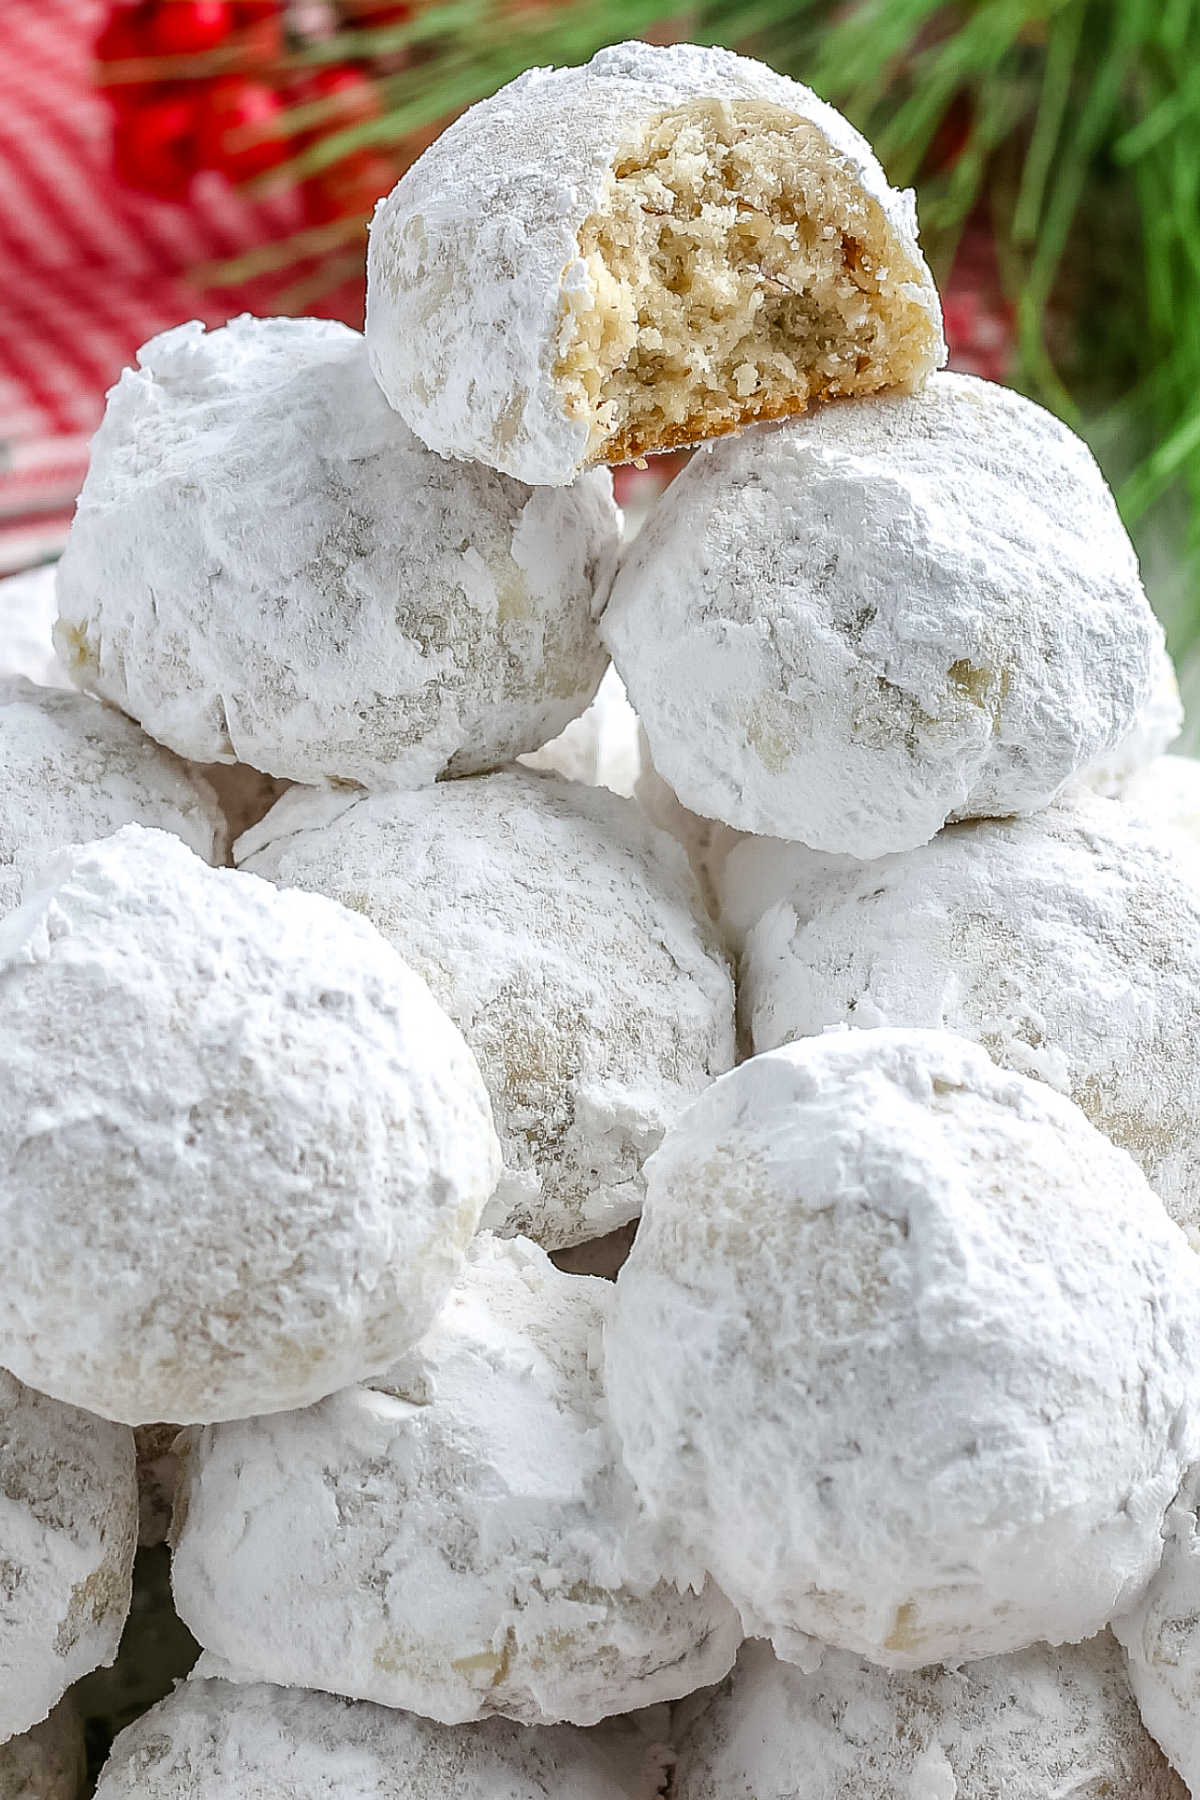 Pecan Snowball Cookies are soft, tender cookies that melt in your mouth. Kids love rolling the cookies in snowy white powdered sugar. via @foodfolksandfun